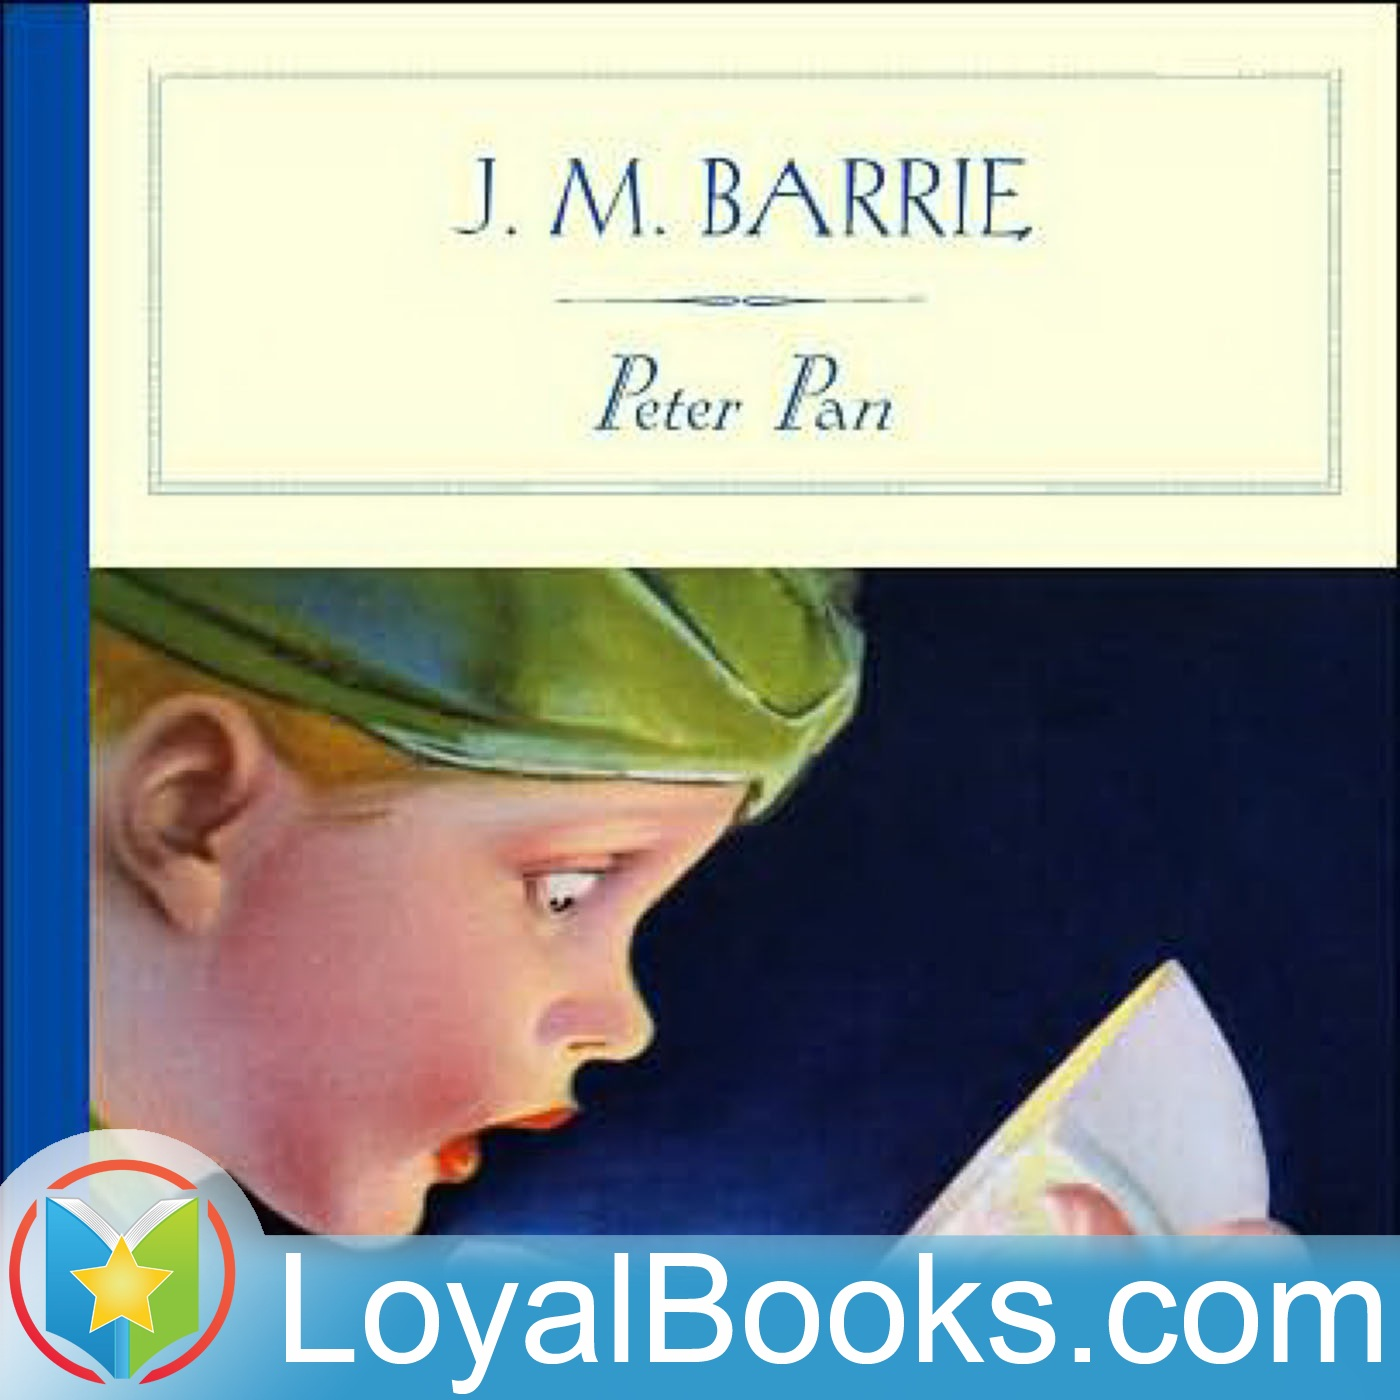 <![CDATA[Peter Pan by J. M. Barrie]]>